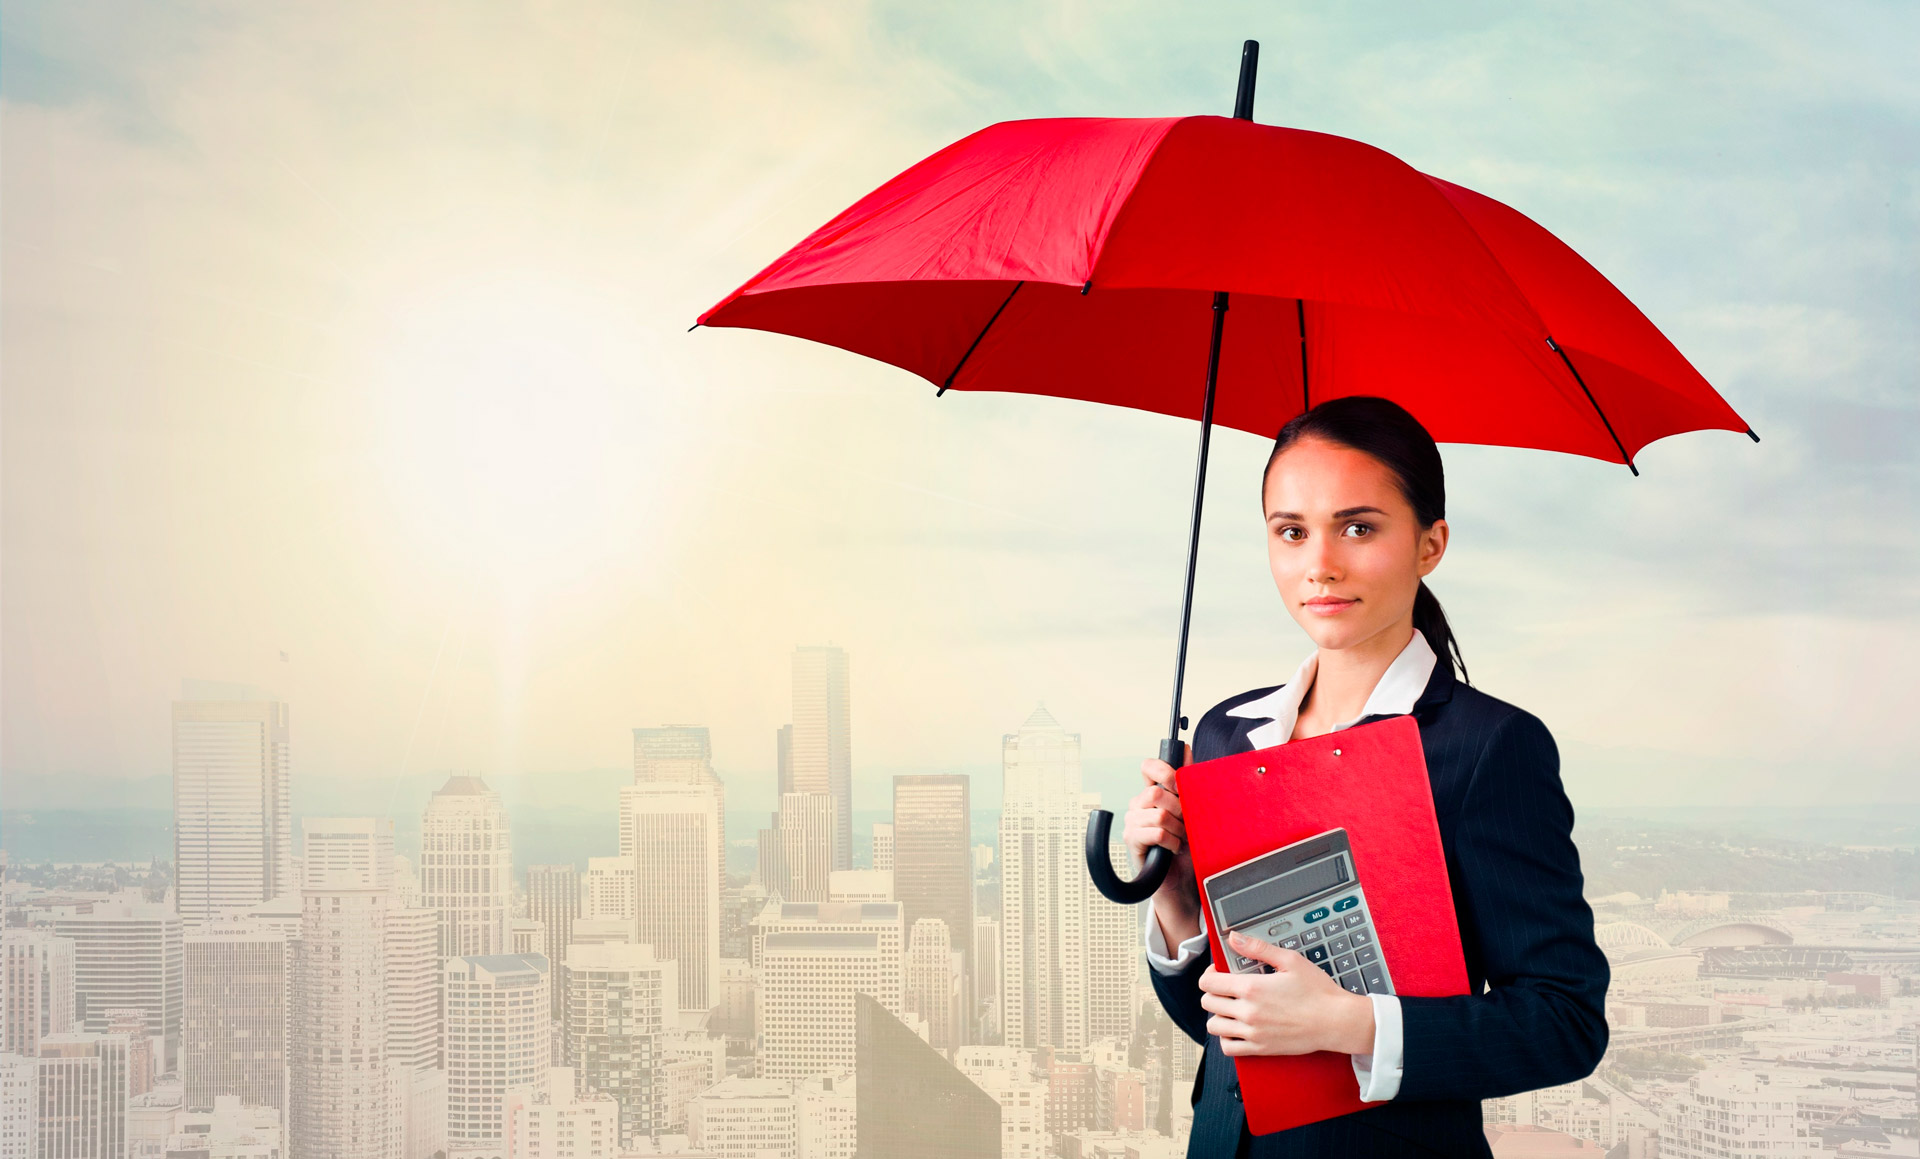 E&A Insurance is proud to announce its insurance services, each provides advantages by decreasing the consumer\'s risks and inspiring increased peace of mind.